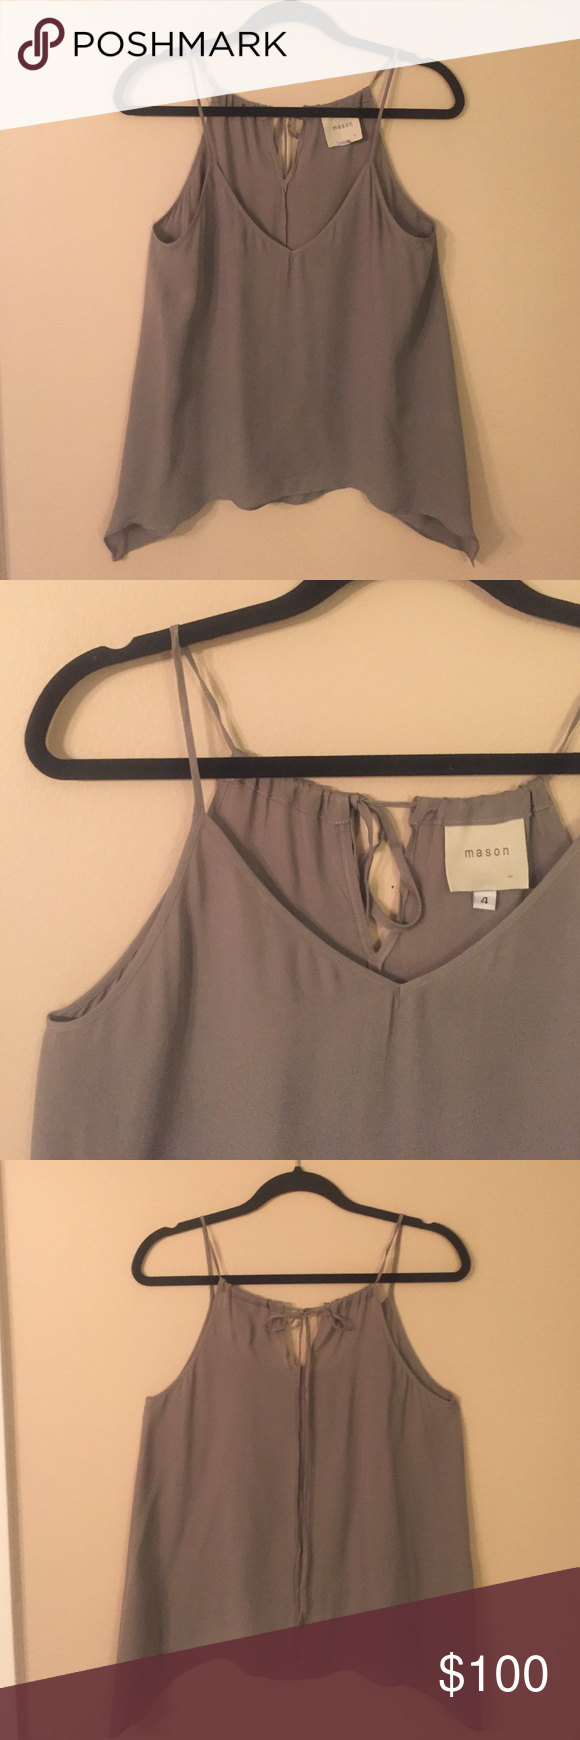 """MASON by MICHELLE MASON Silk Tank EUC!! Gorgeous grey washed silk tank with adjustable spaghetti straps that tie in back. Tank has a deep v neckline and longer points at hem at sideseams. Laid flat chest measures 17"""", length from shoulder to hem is 24"""". mason by Michelle Mason Tops Tank Tops"""